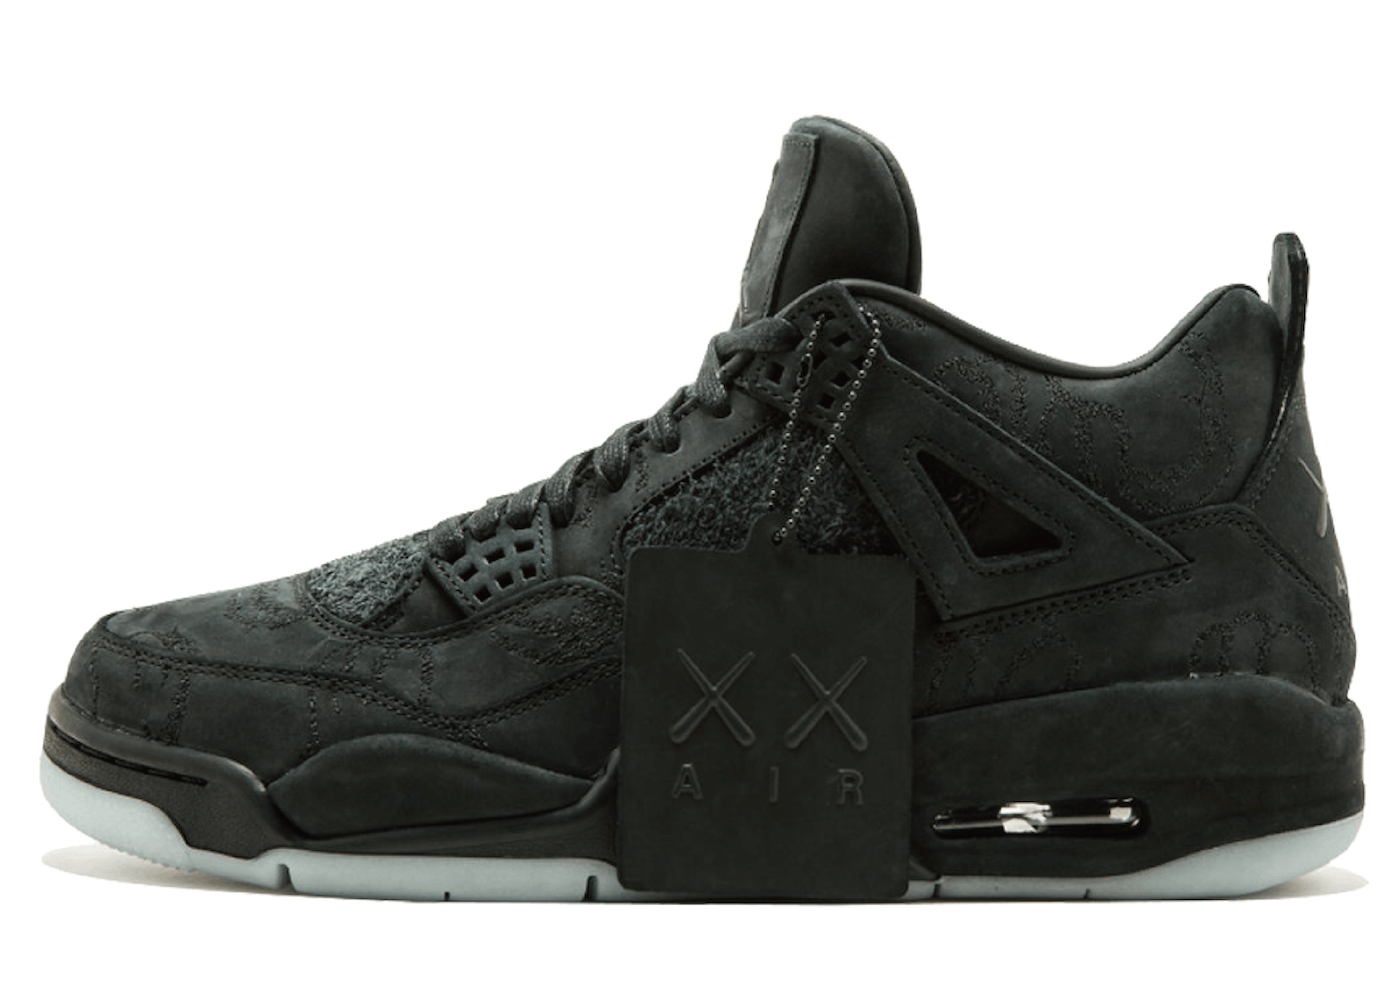 Jordan 4 Retro Kaws Blackの写真